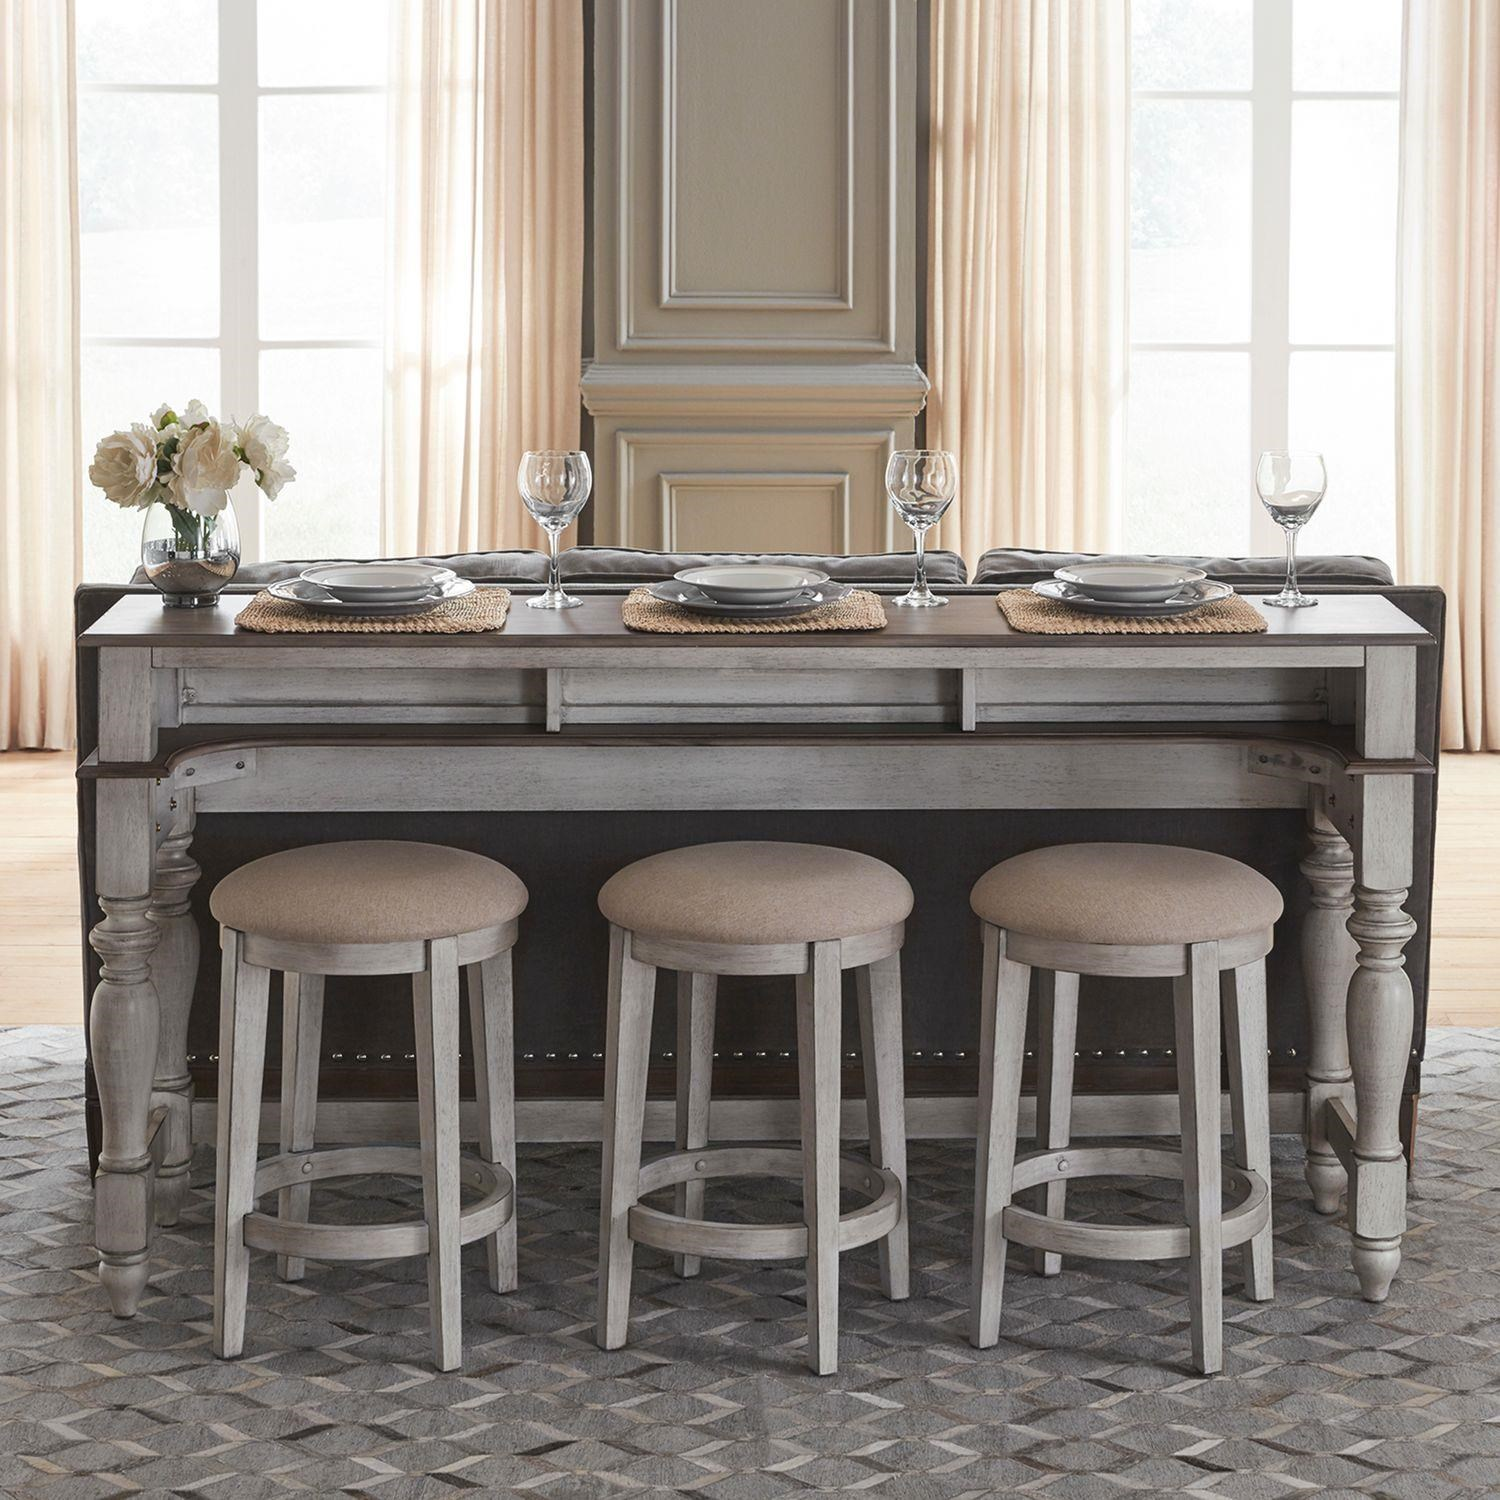 Ocean Isle Bar Table and Stools by Liberty Furniture at Johnny Janosik